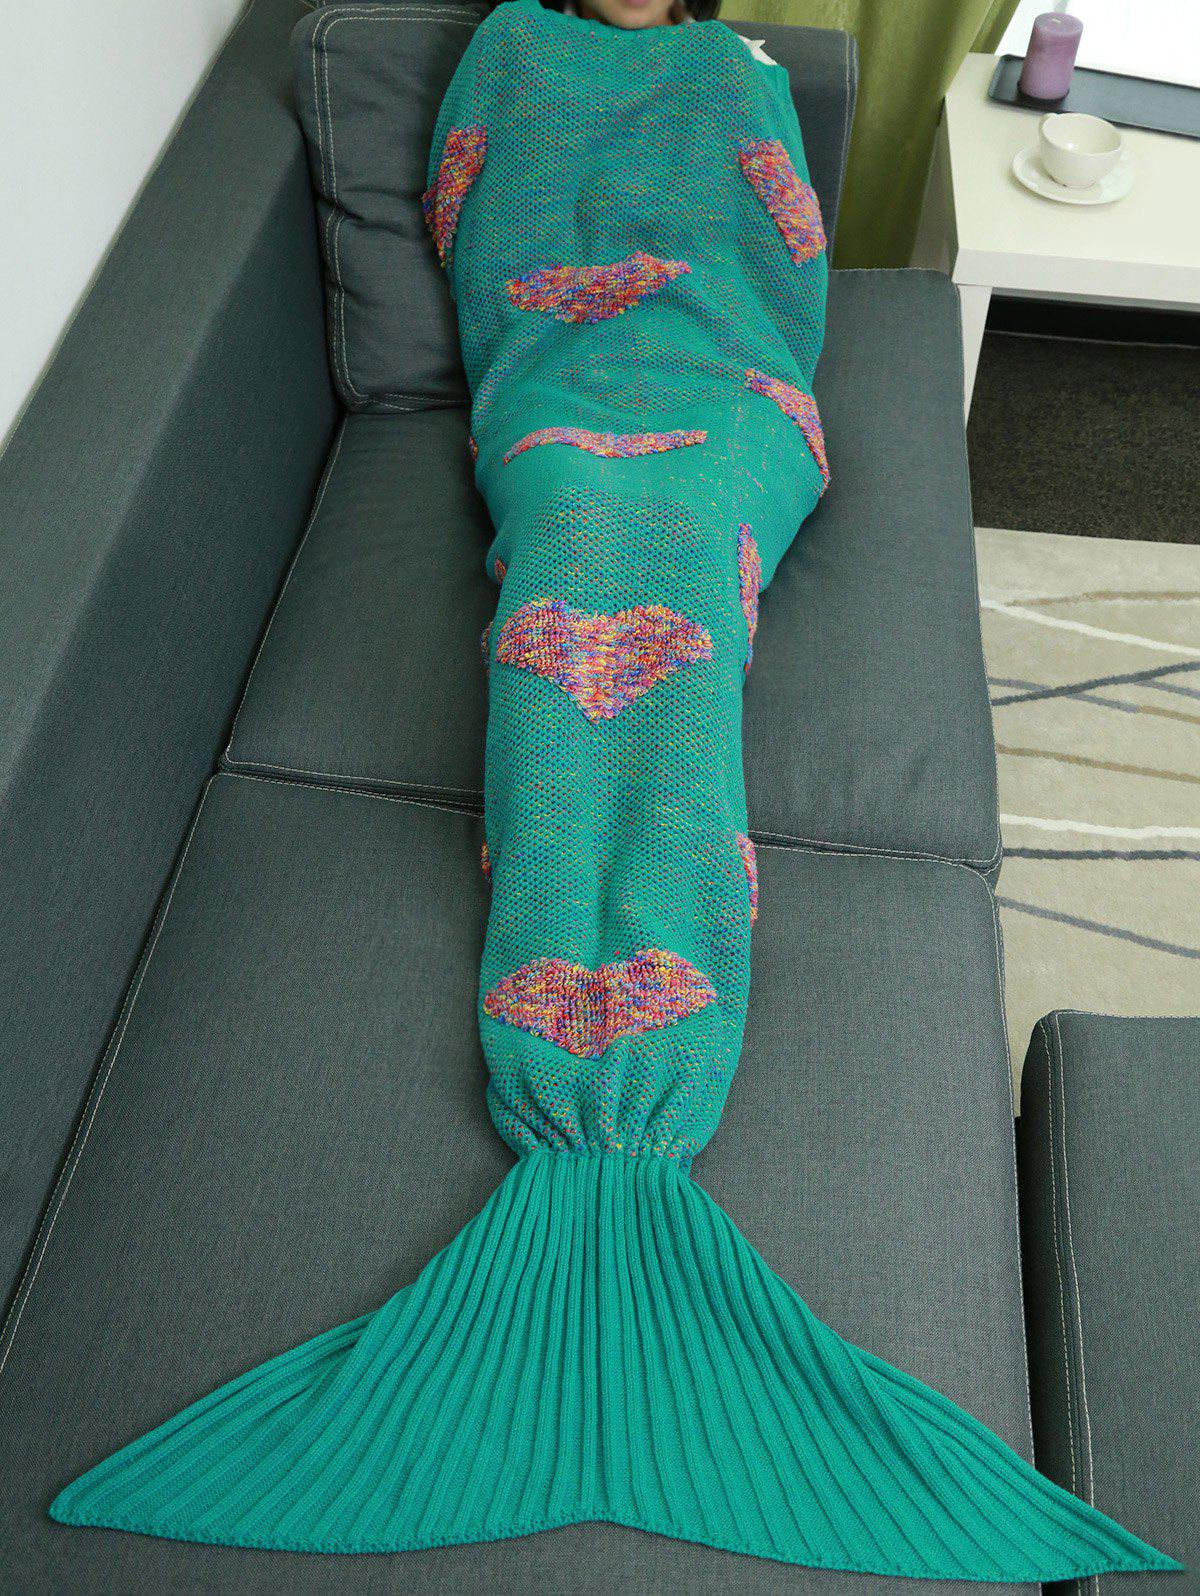 Outfits Colorful Peach Heart Crochet Knitting Fish Scales Design Mermaid Tail Style Blanket